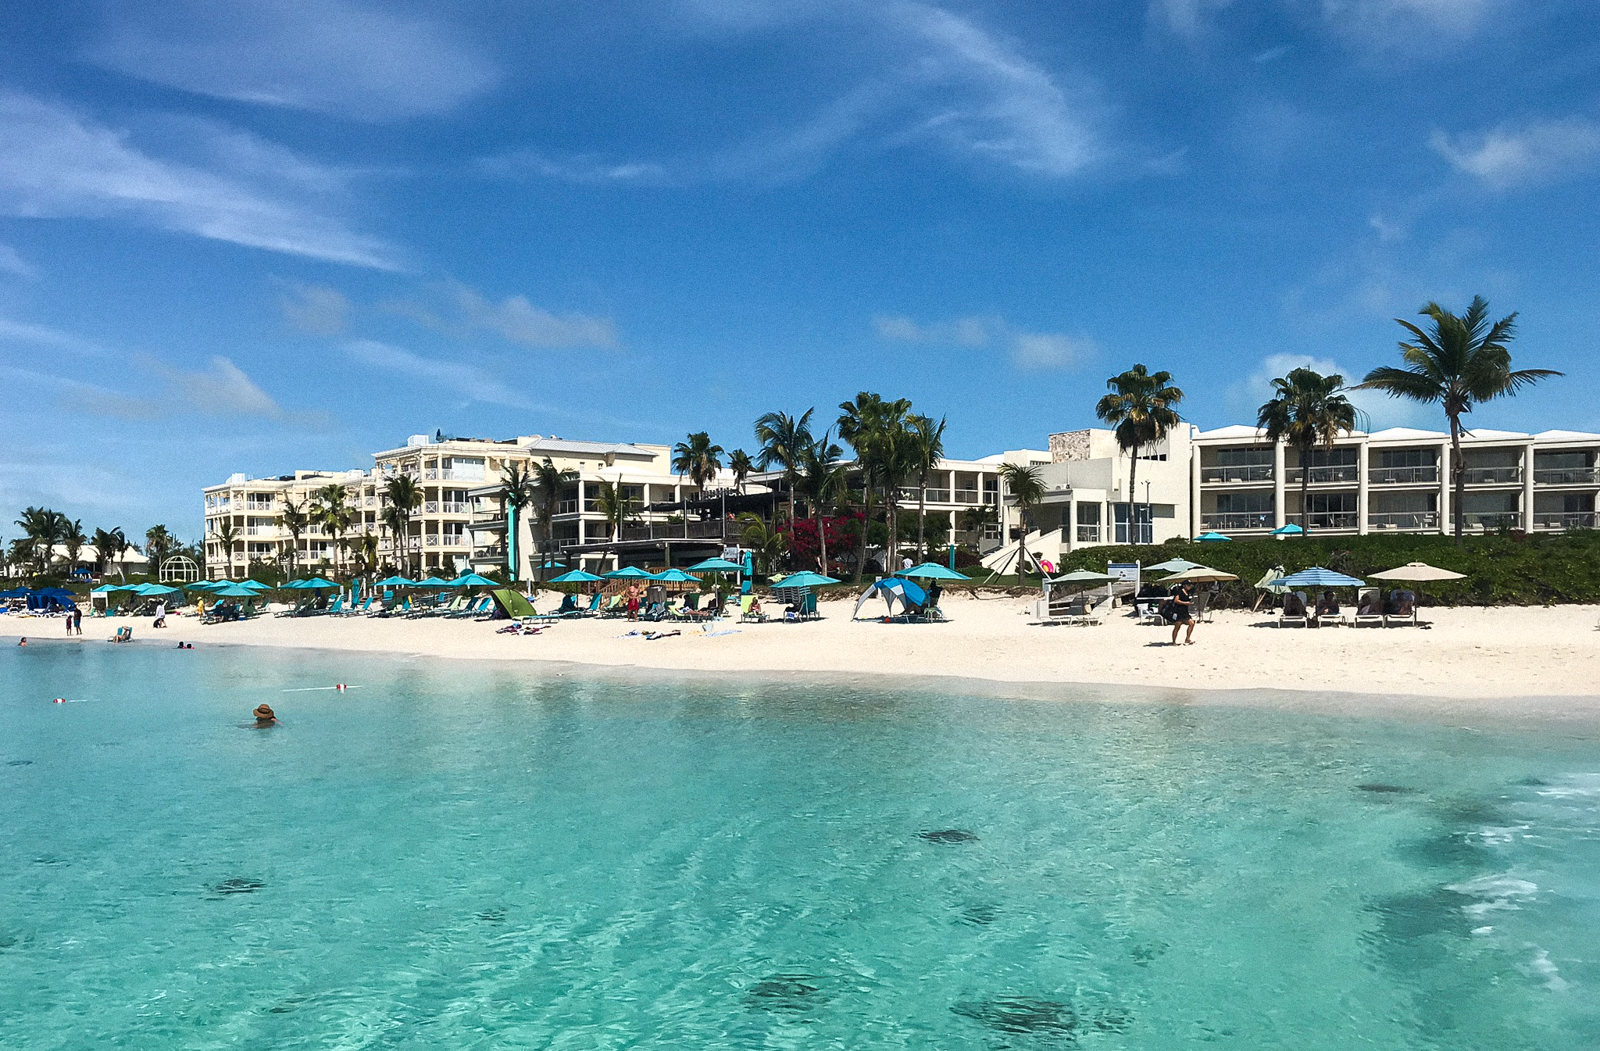 #5 Boutique Resorts - Back at the beach, snorkeling is quite common directly in front of the boutique resort, Coral Gardens on Grace Bay.This resort is also home to Provo's popular beachfront bar and restaurant: Somewhere Cafe & Lounge.